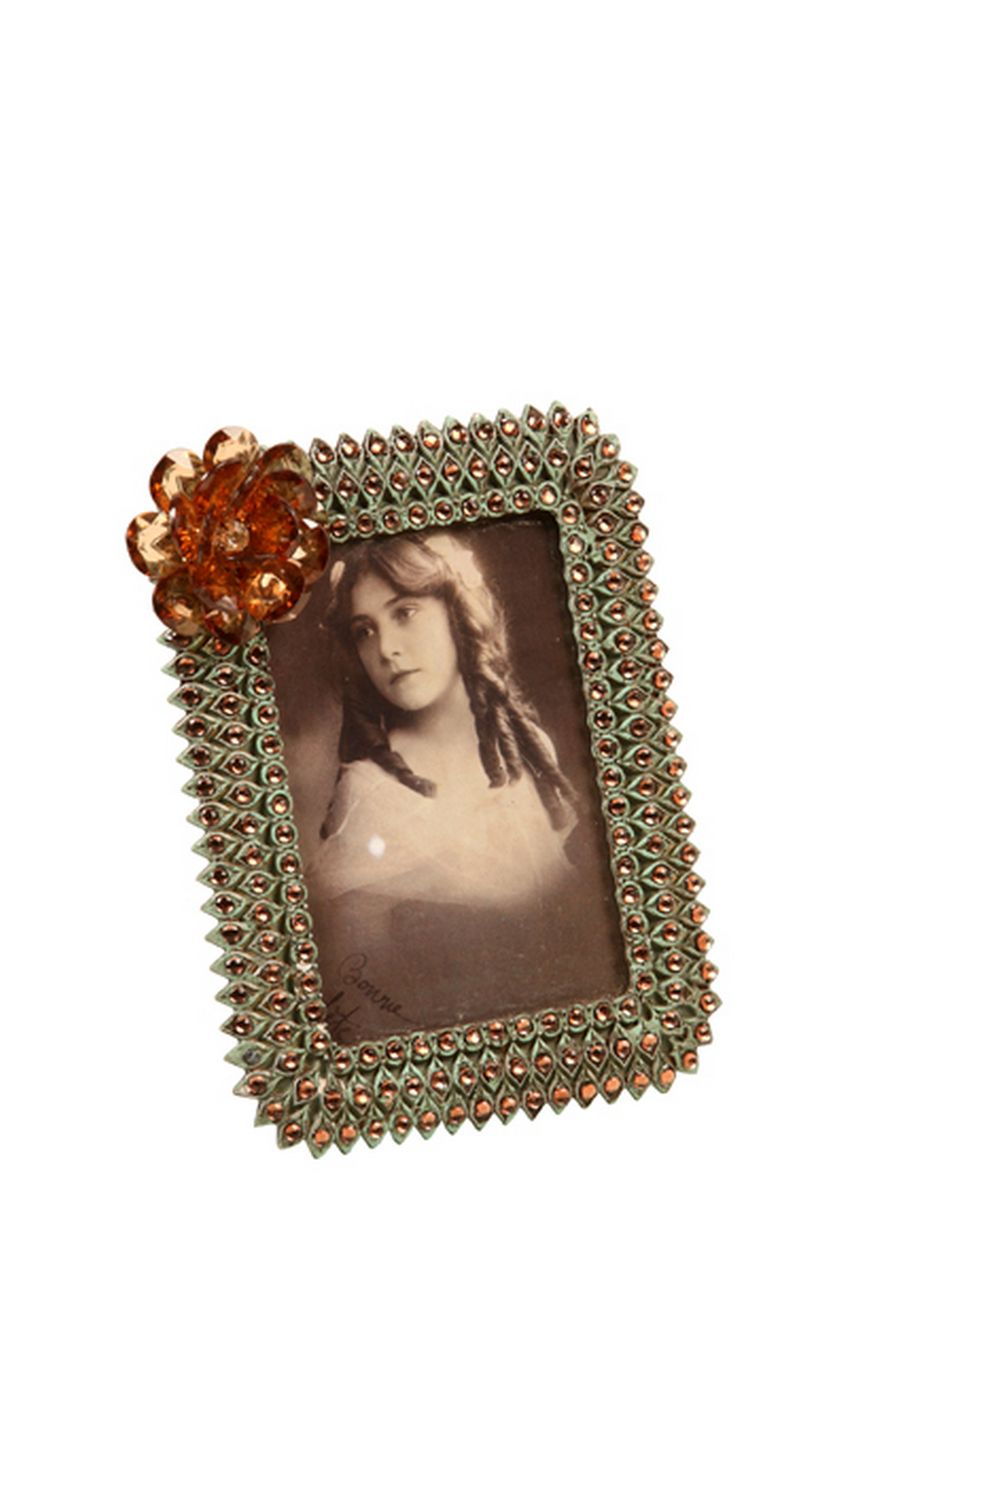 Porta-Retrato De Metal Decorativo Sheen Com Pedras